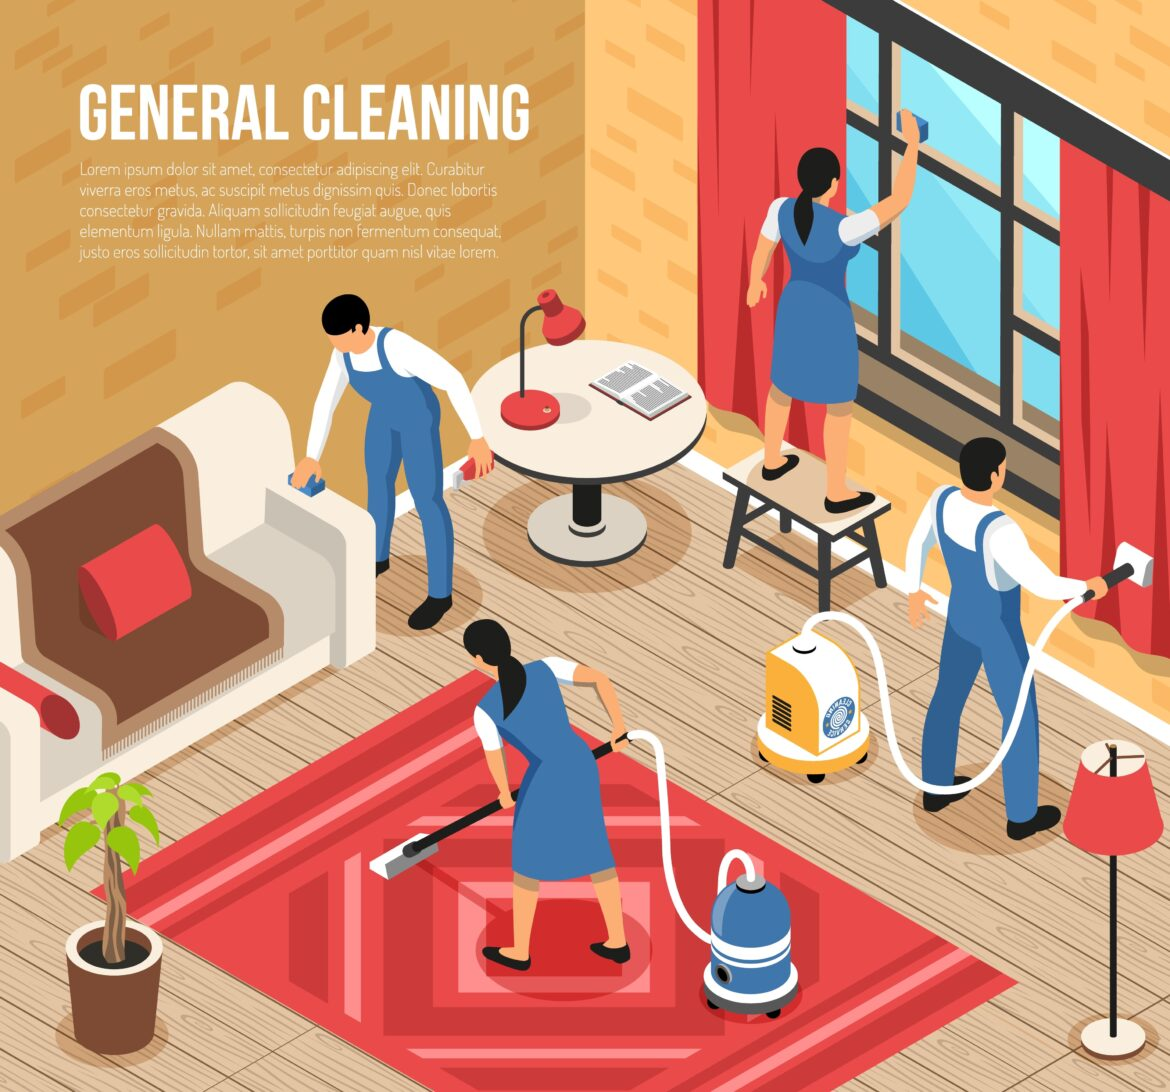 How To Keep Your Home Spacious And Clean